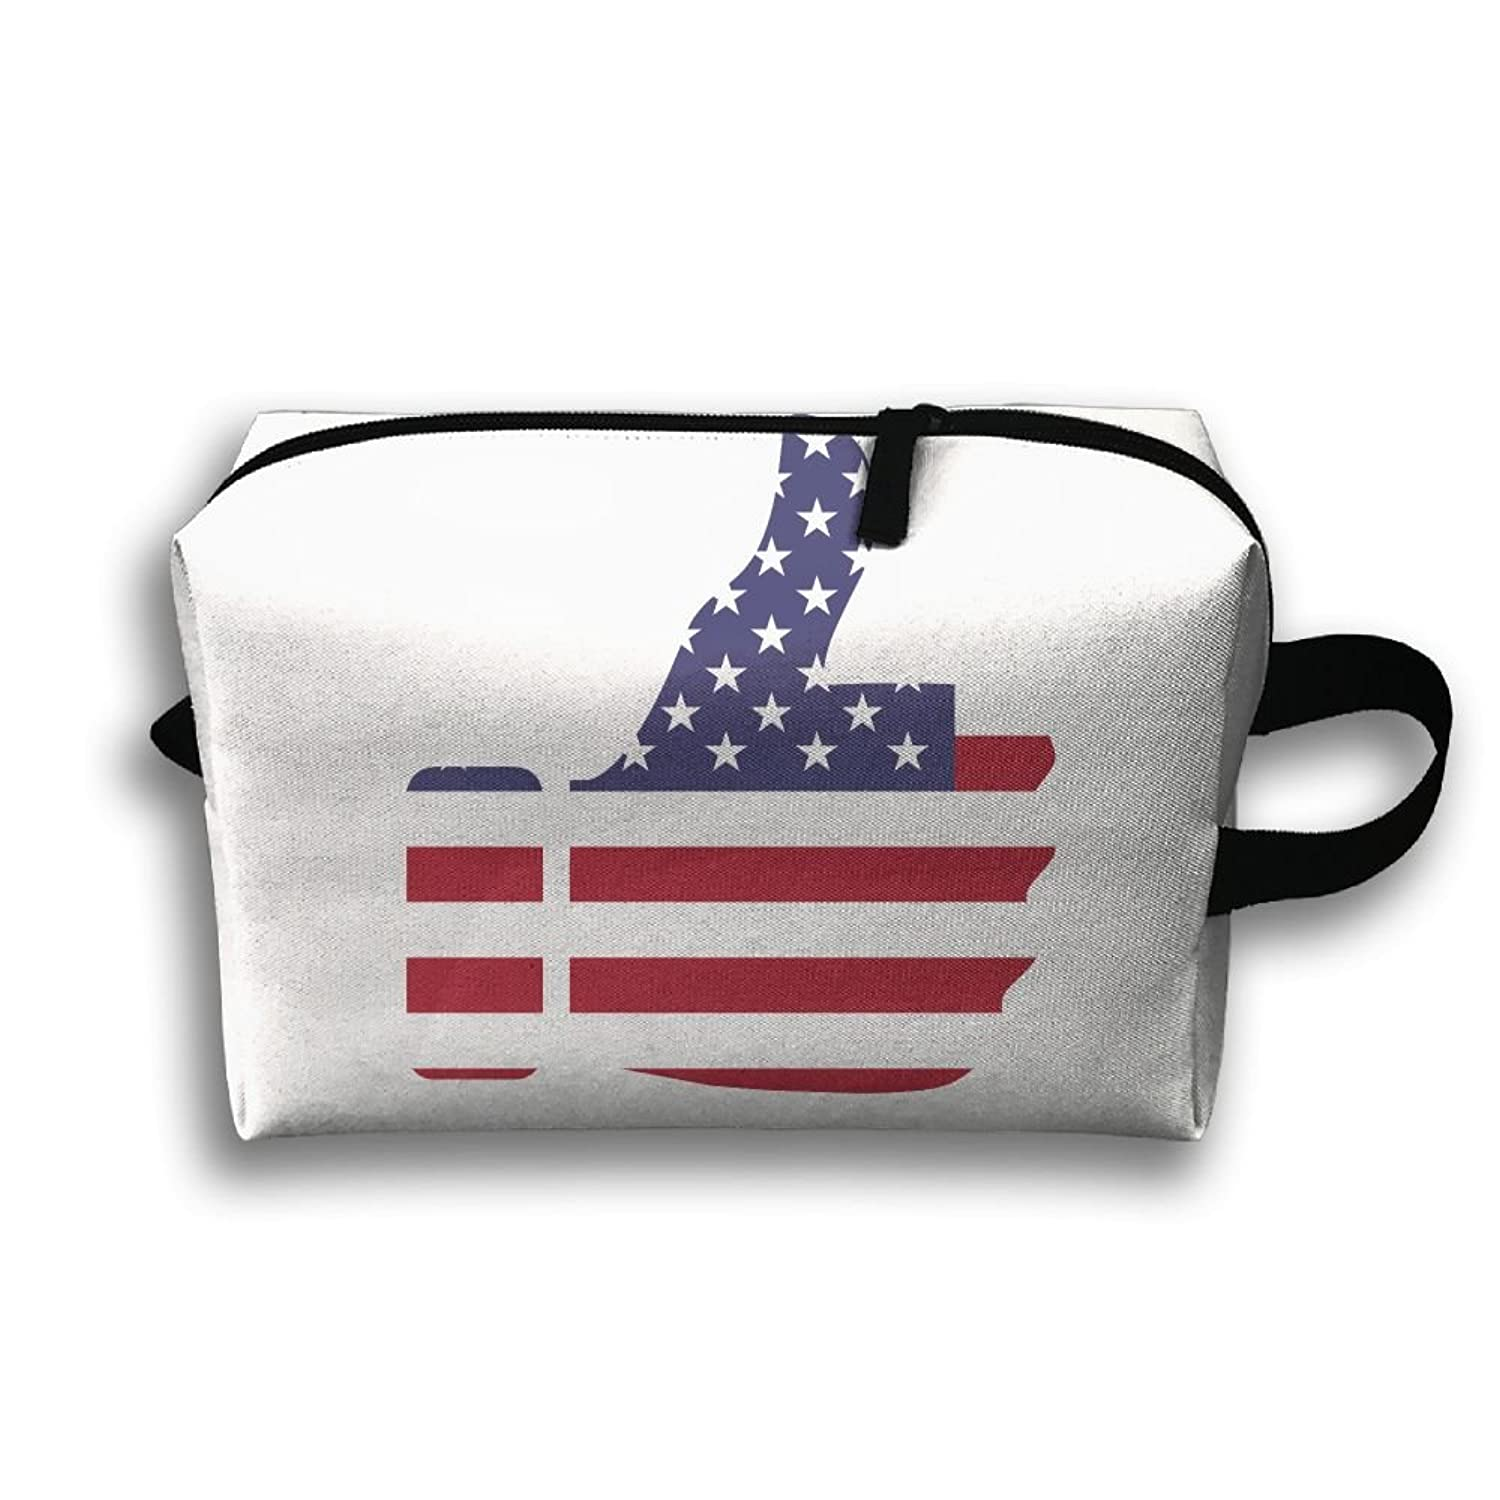 Storage Bag Travel Pouch Thumb American Flag Purse Organizer Power Bank Data Wire Cosmetic Stationery Holder